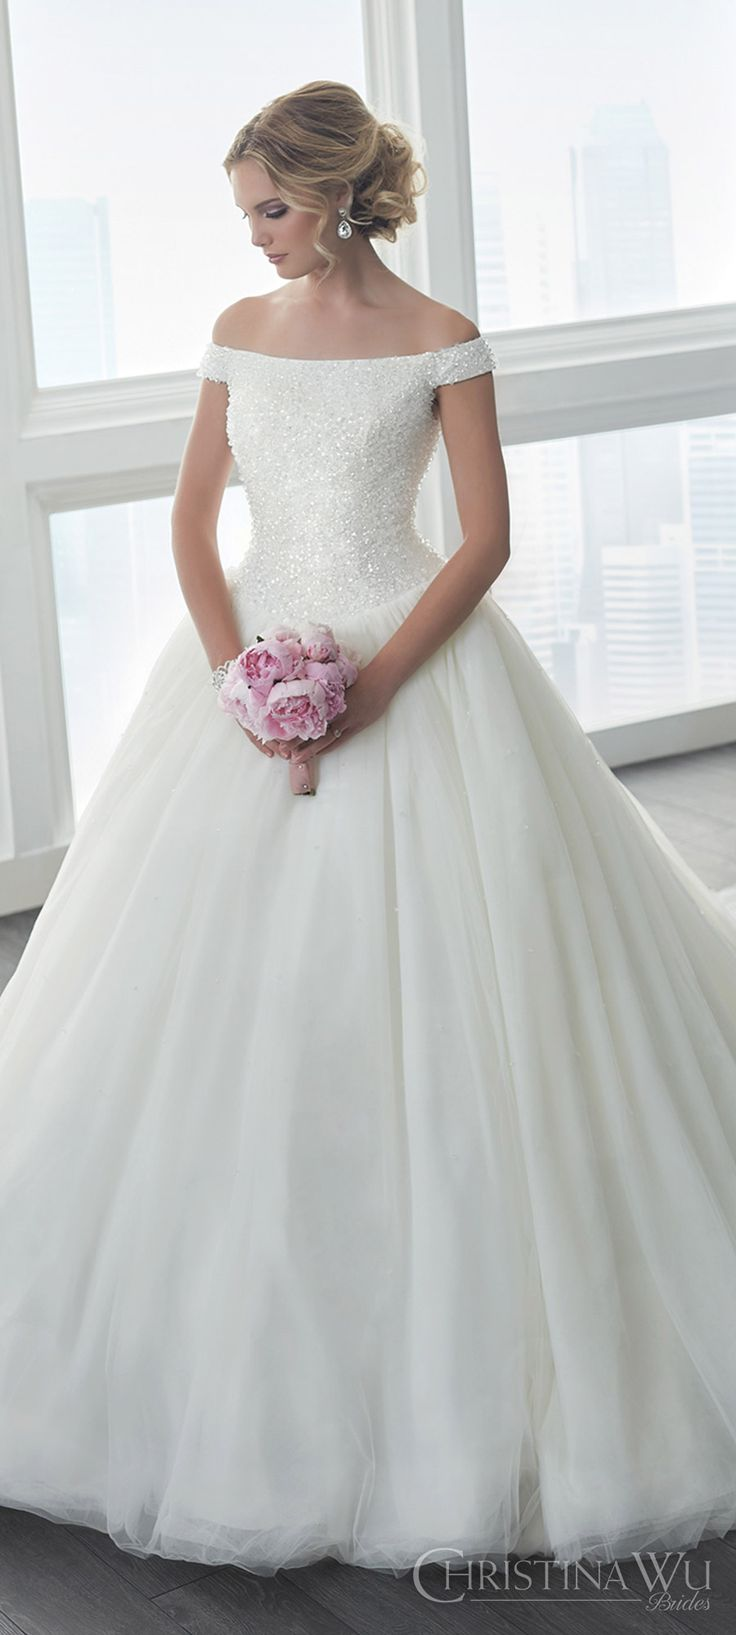 christina wu brides spring 2017 bridal off shoulder heavily beaded bodice ball gown wedding dress (15633) zfv romantic princess long train #bridal #wedding